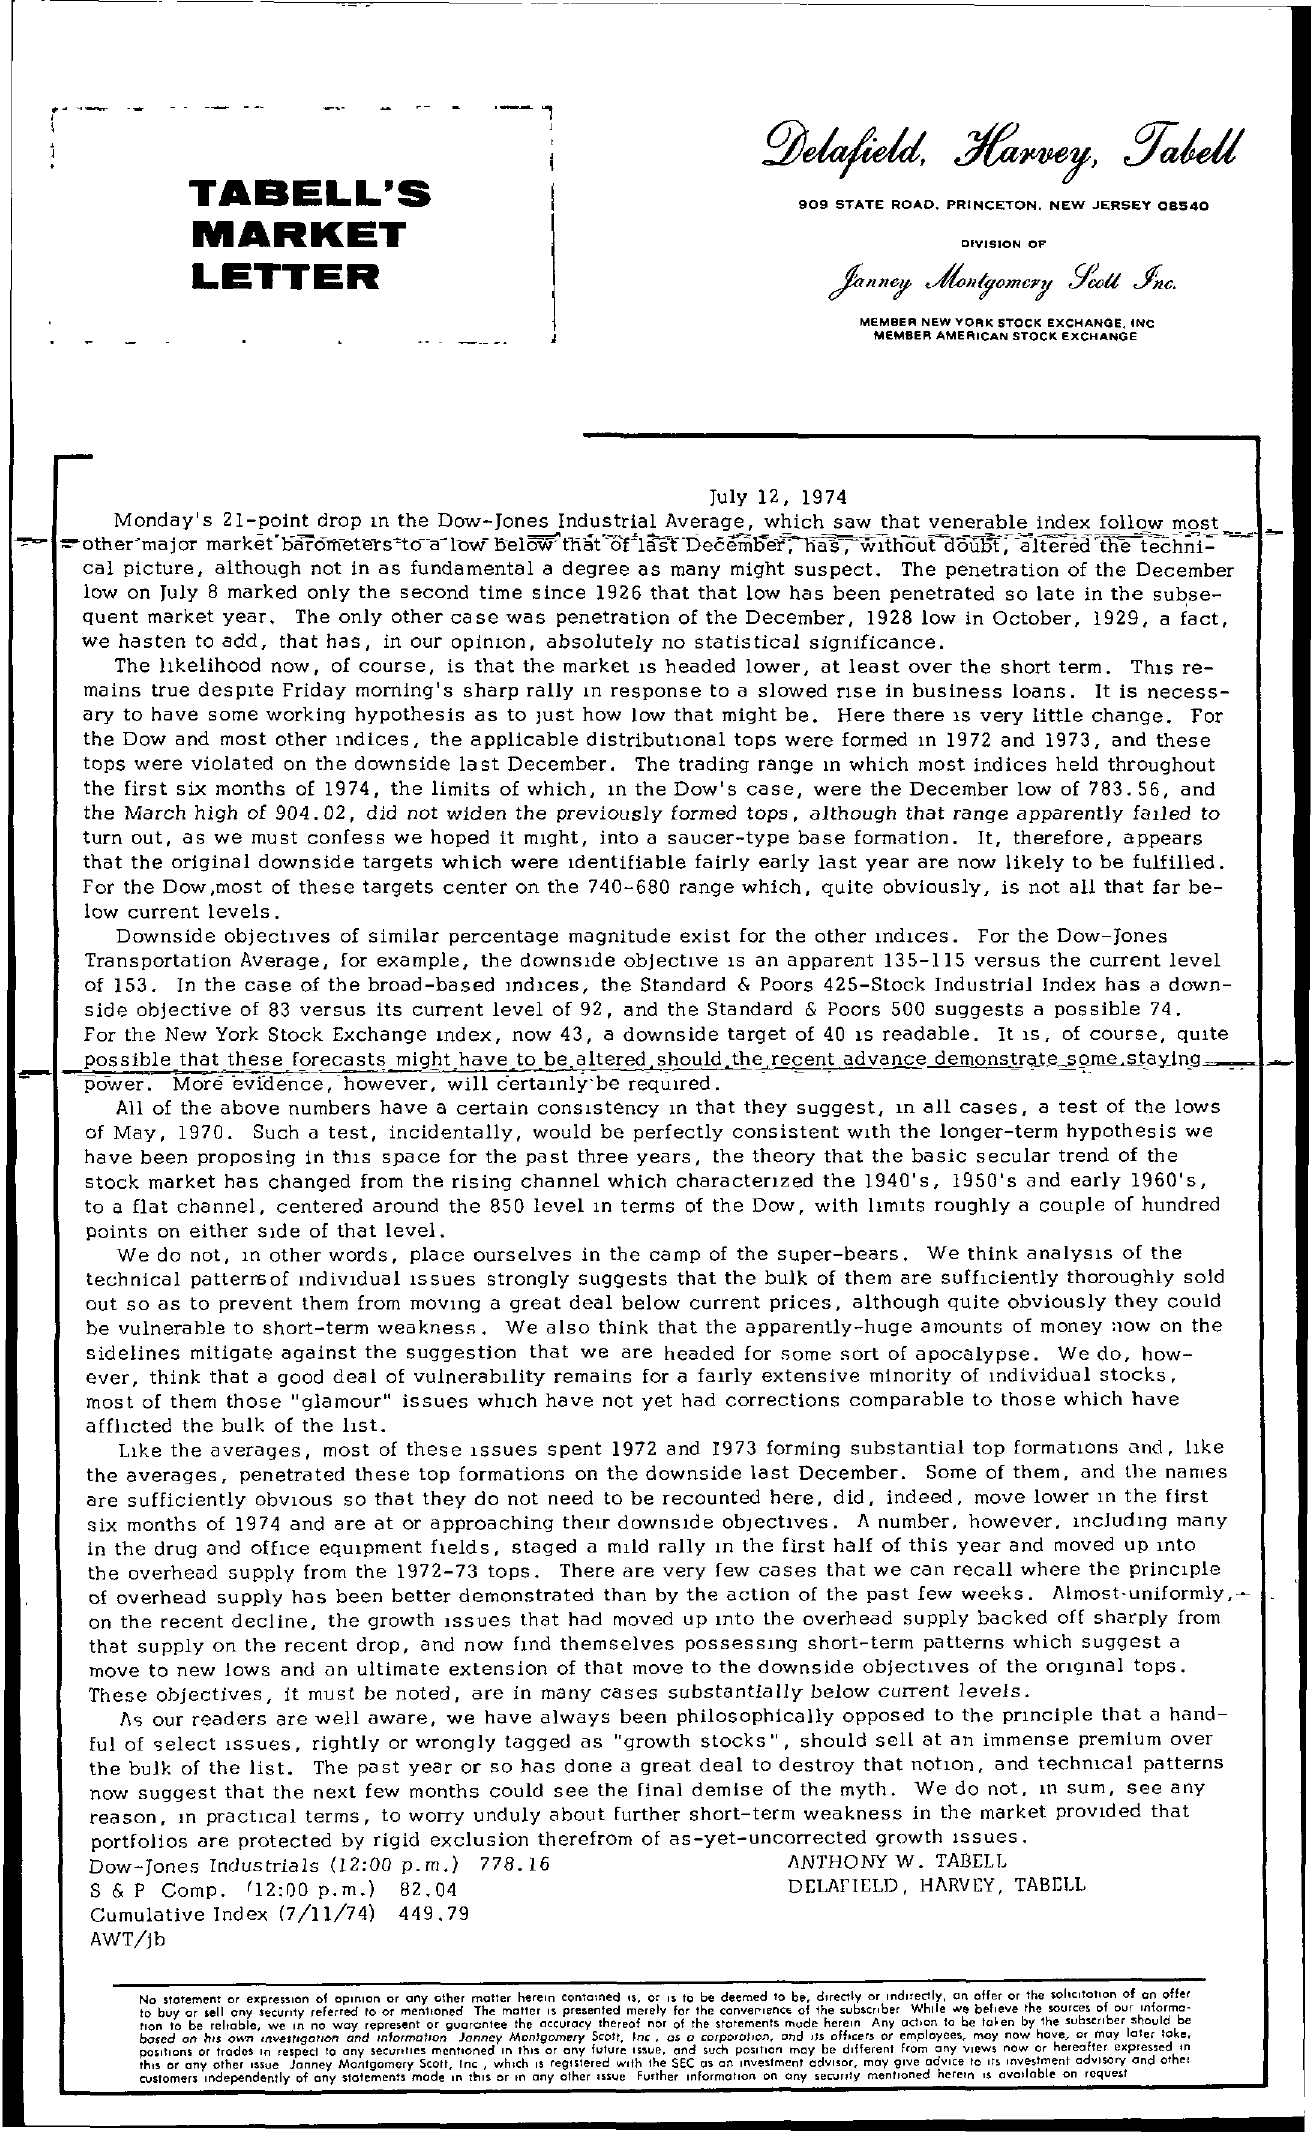 Tabell's Market Letter - July 12, 1974